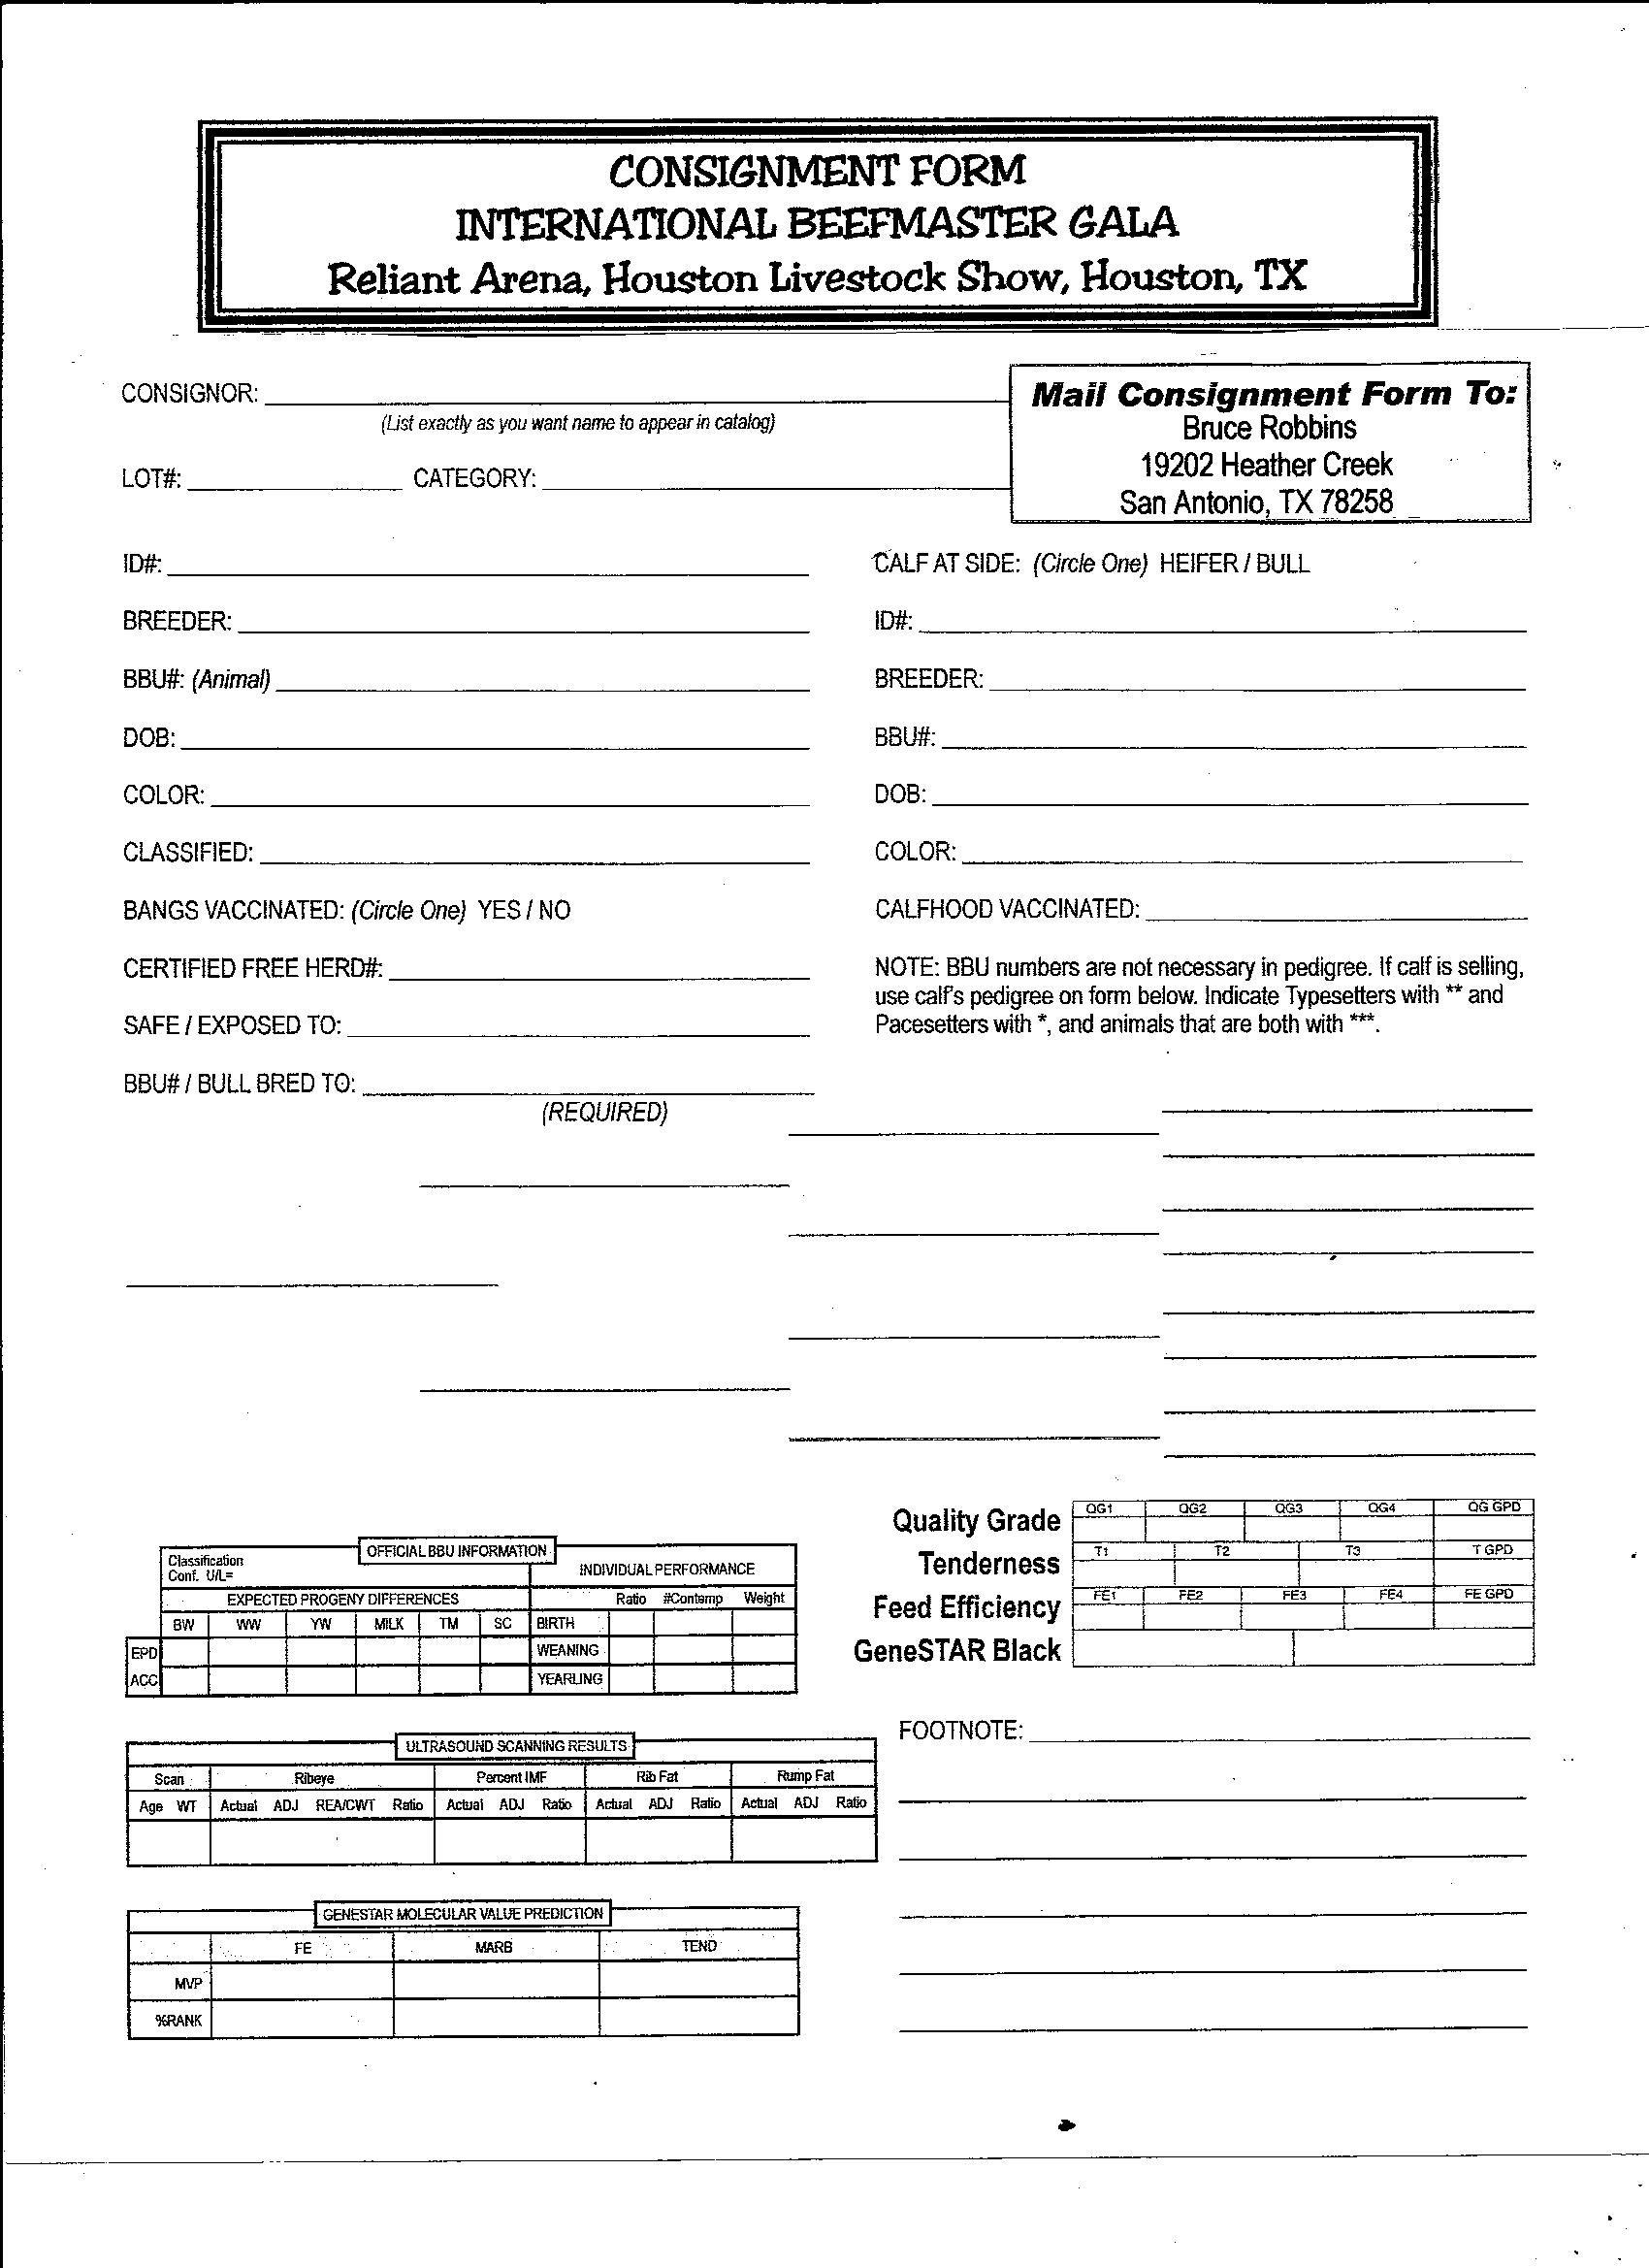 Sample Consignment Agreement Forms business representative sample – Sample Consignment Agreement